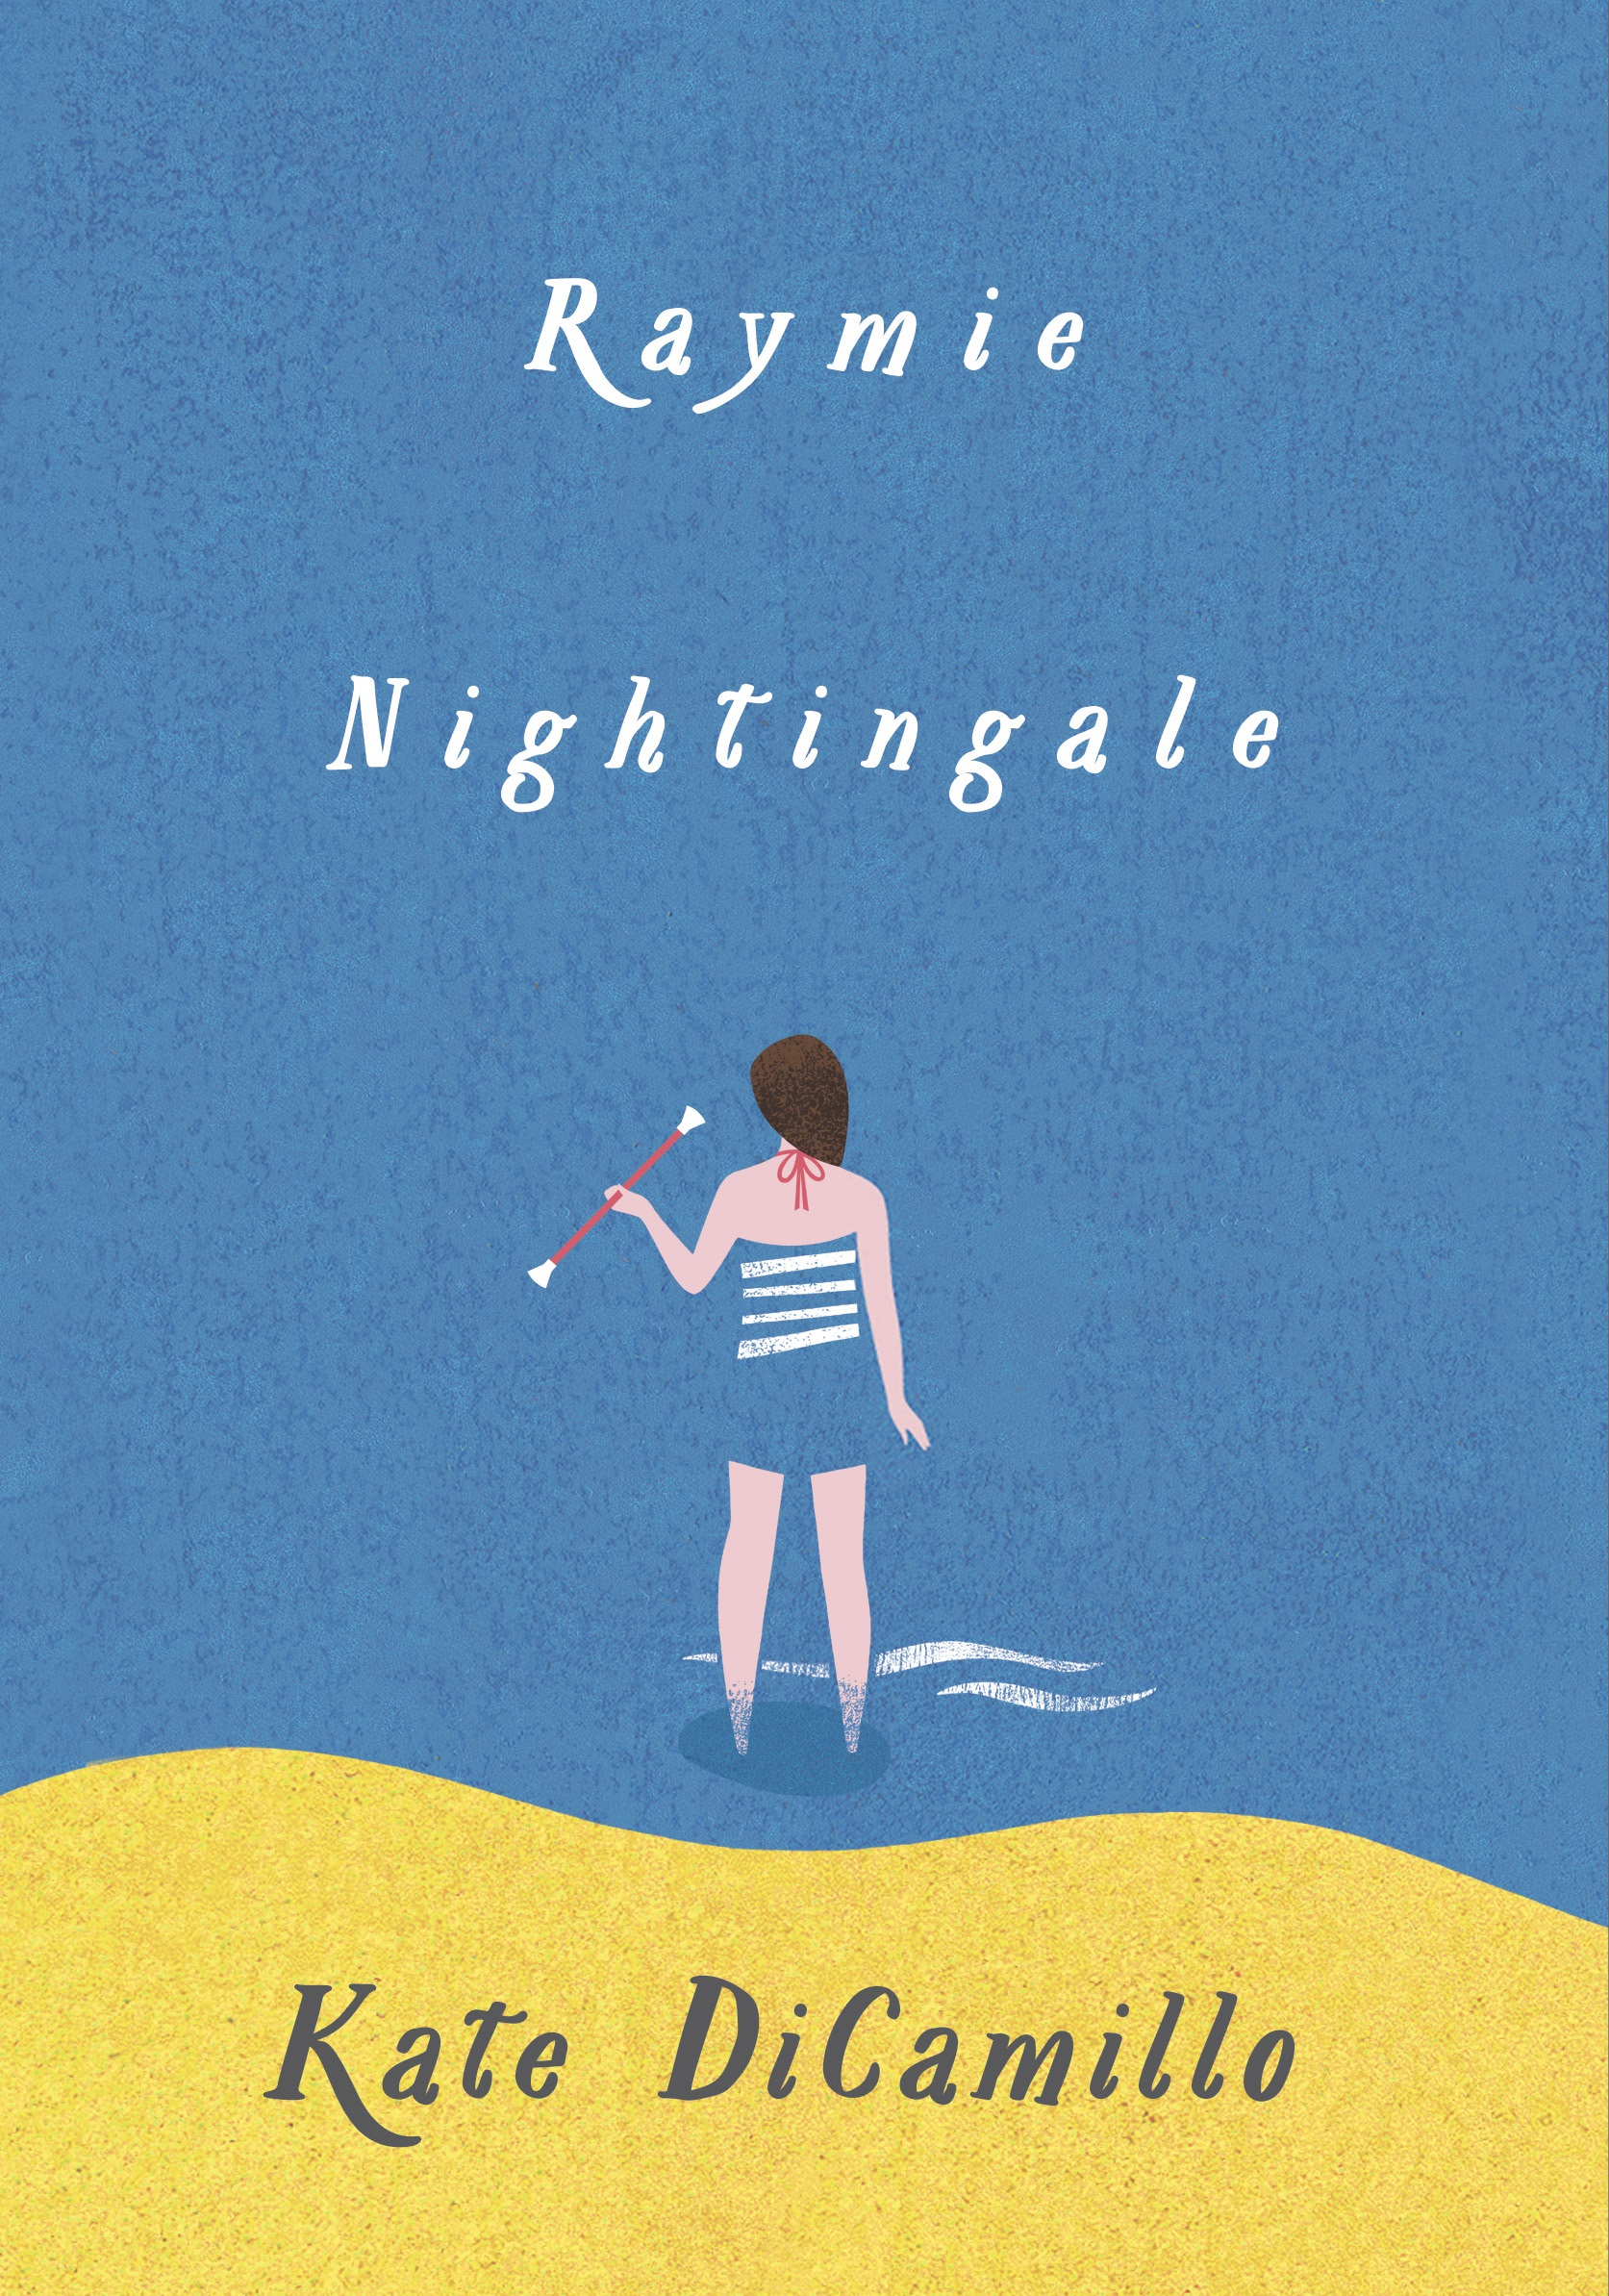 """Raymie Nightingale"" Cover Art"